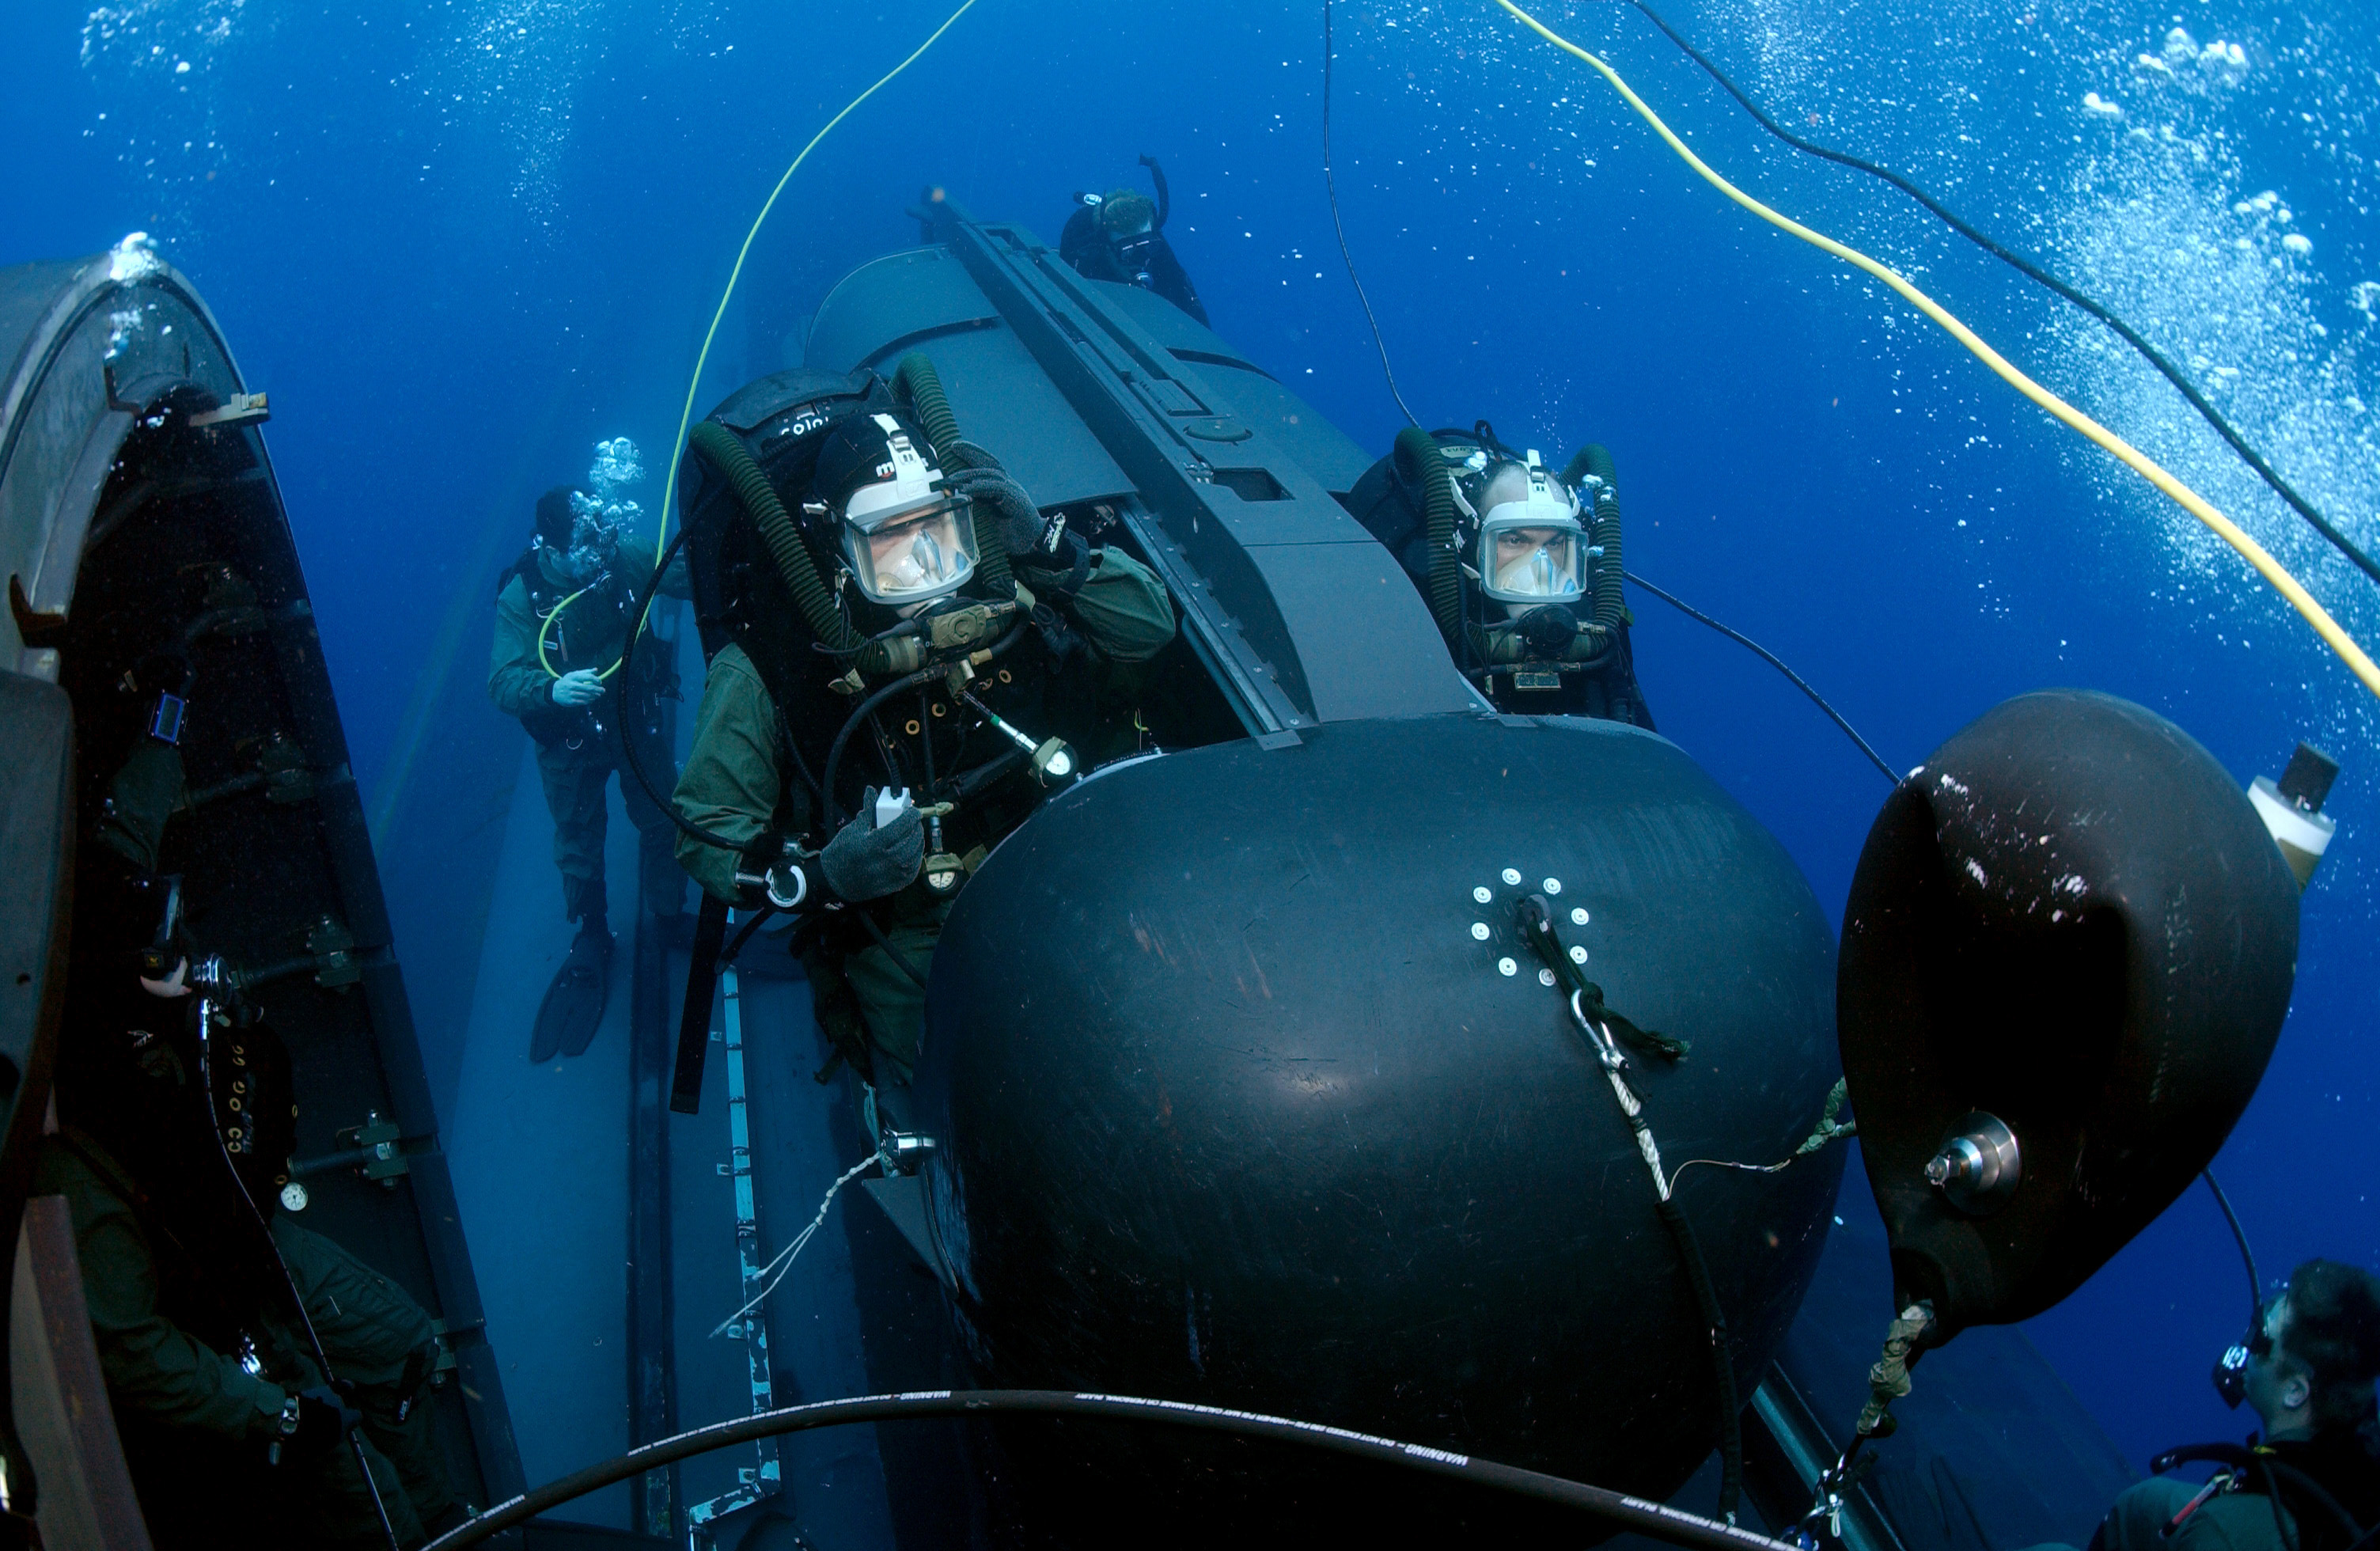 Members of SEAL Delivery Vehicle Team Two (SDVT-2) prepare to launch one of the team's SEAL Delivery Vehicles (SDV) from the back of the Los Angeles-class attack submarine USS Philadelphia (SSN 690) on a training exercise in May 2005. US Navy photo.